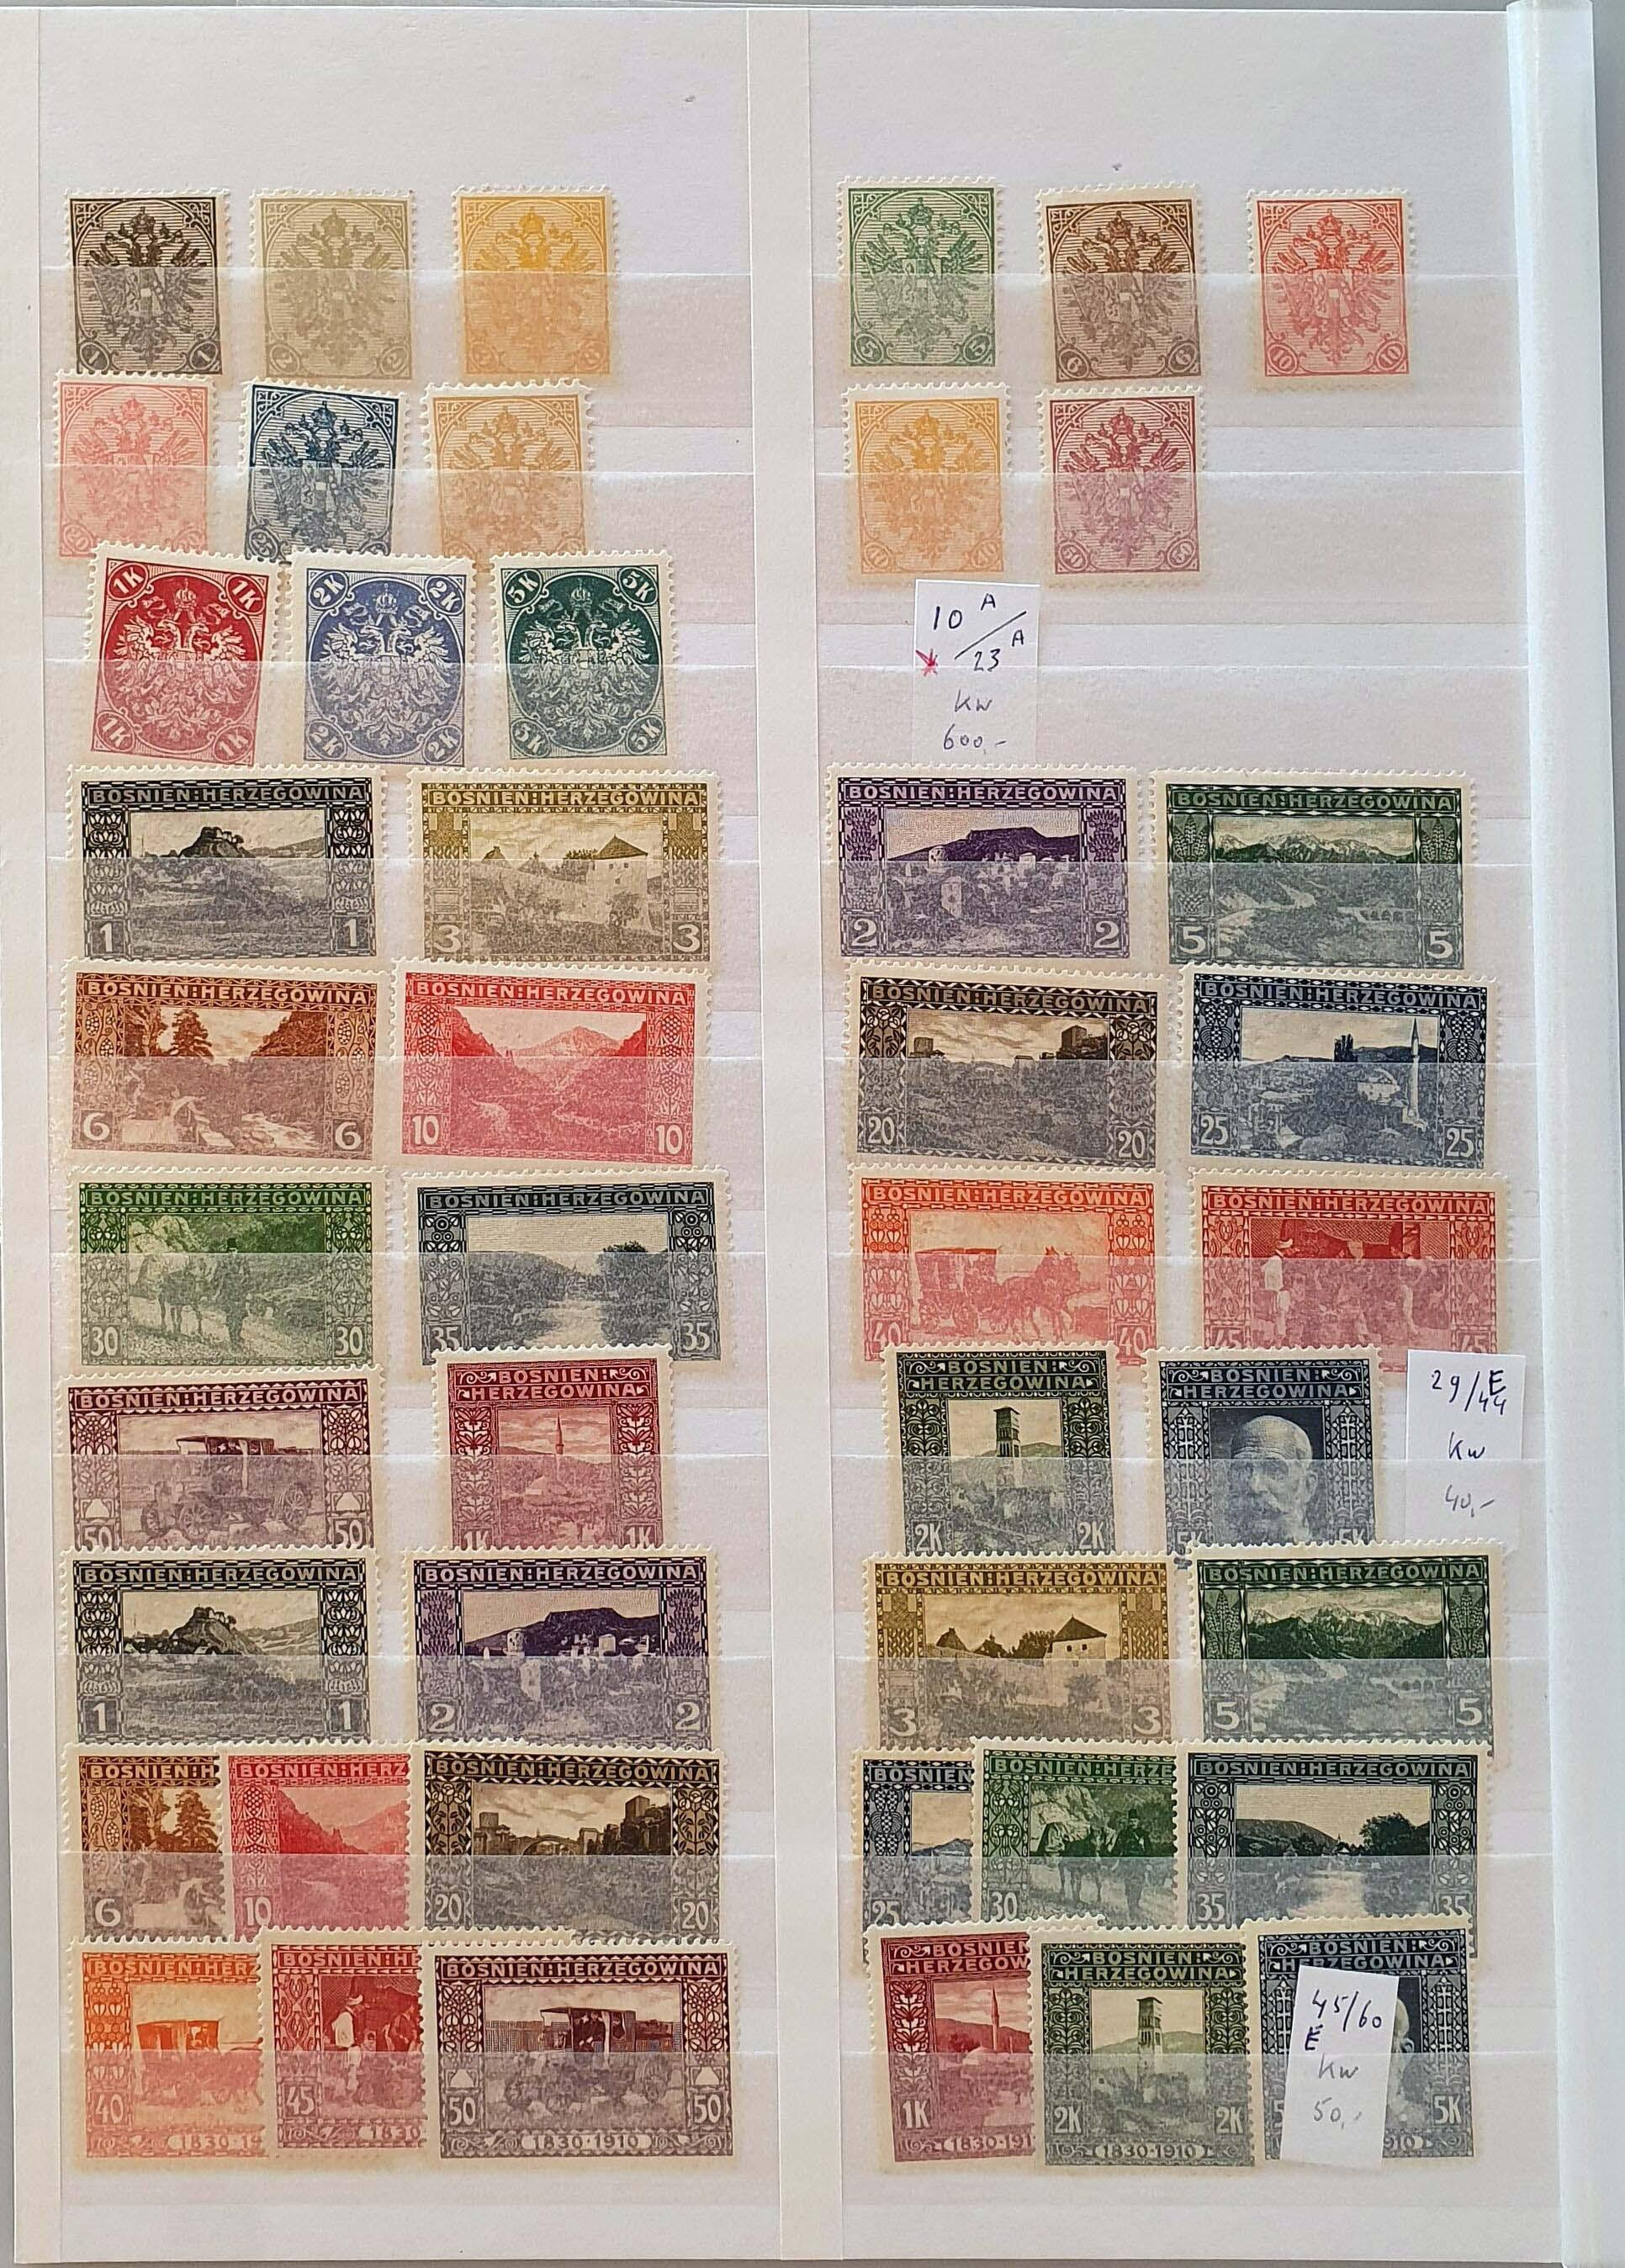 Lot 403 - Austria and former territories Bosnia and Herzegovina (Austrian) -  Corinphila Veilingen Auction 250-253 - Day 1 - Foreign countries